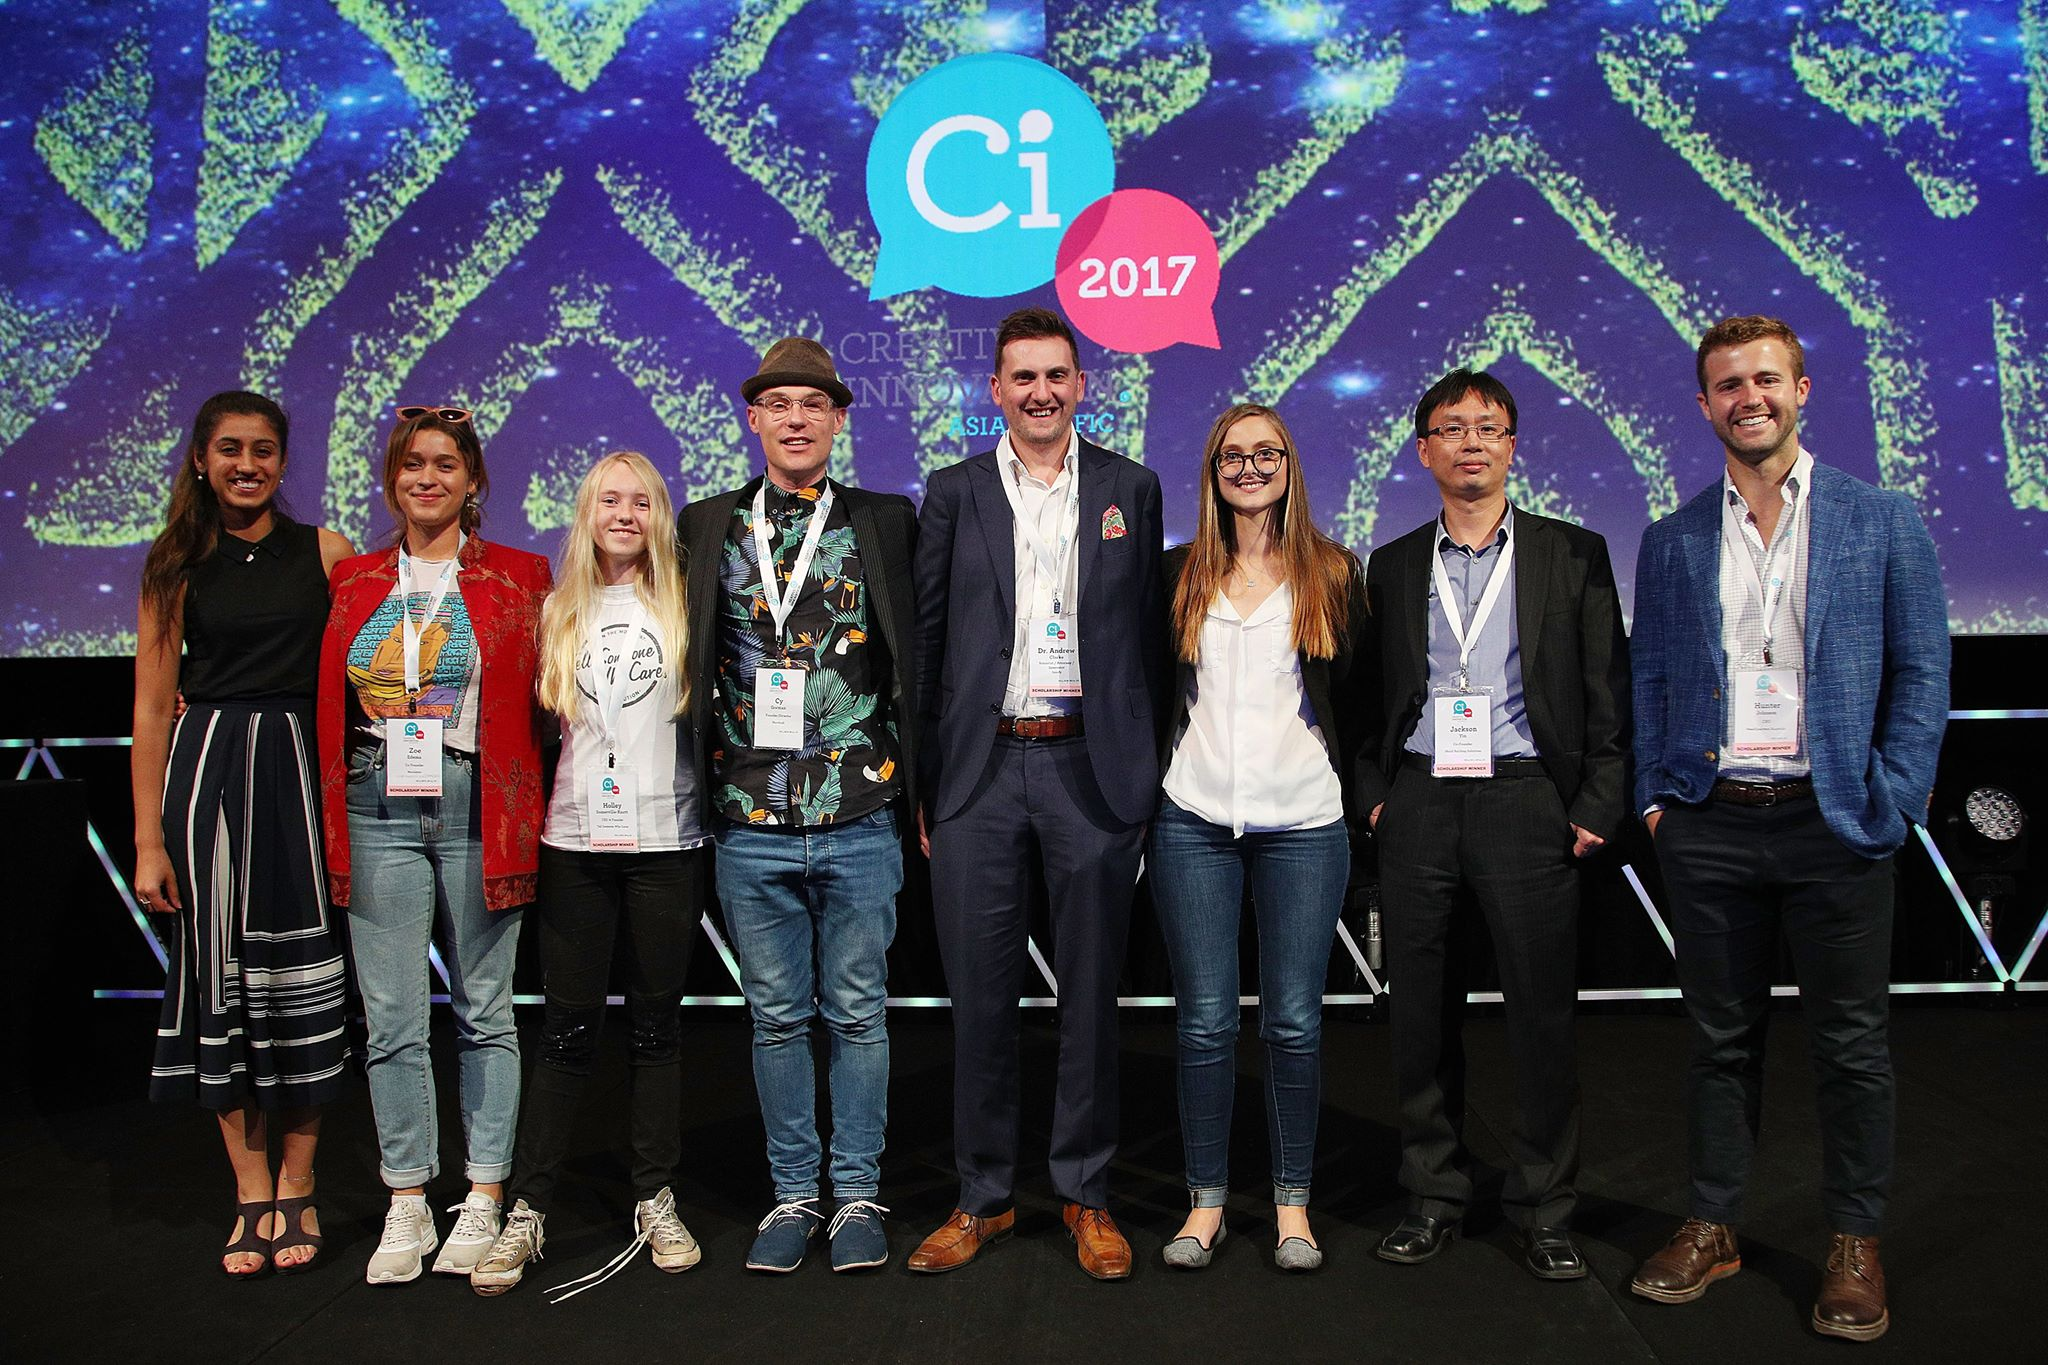 ci2017 Scholarship Winners photos.jpg